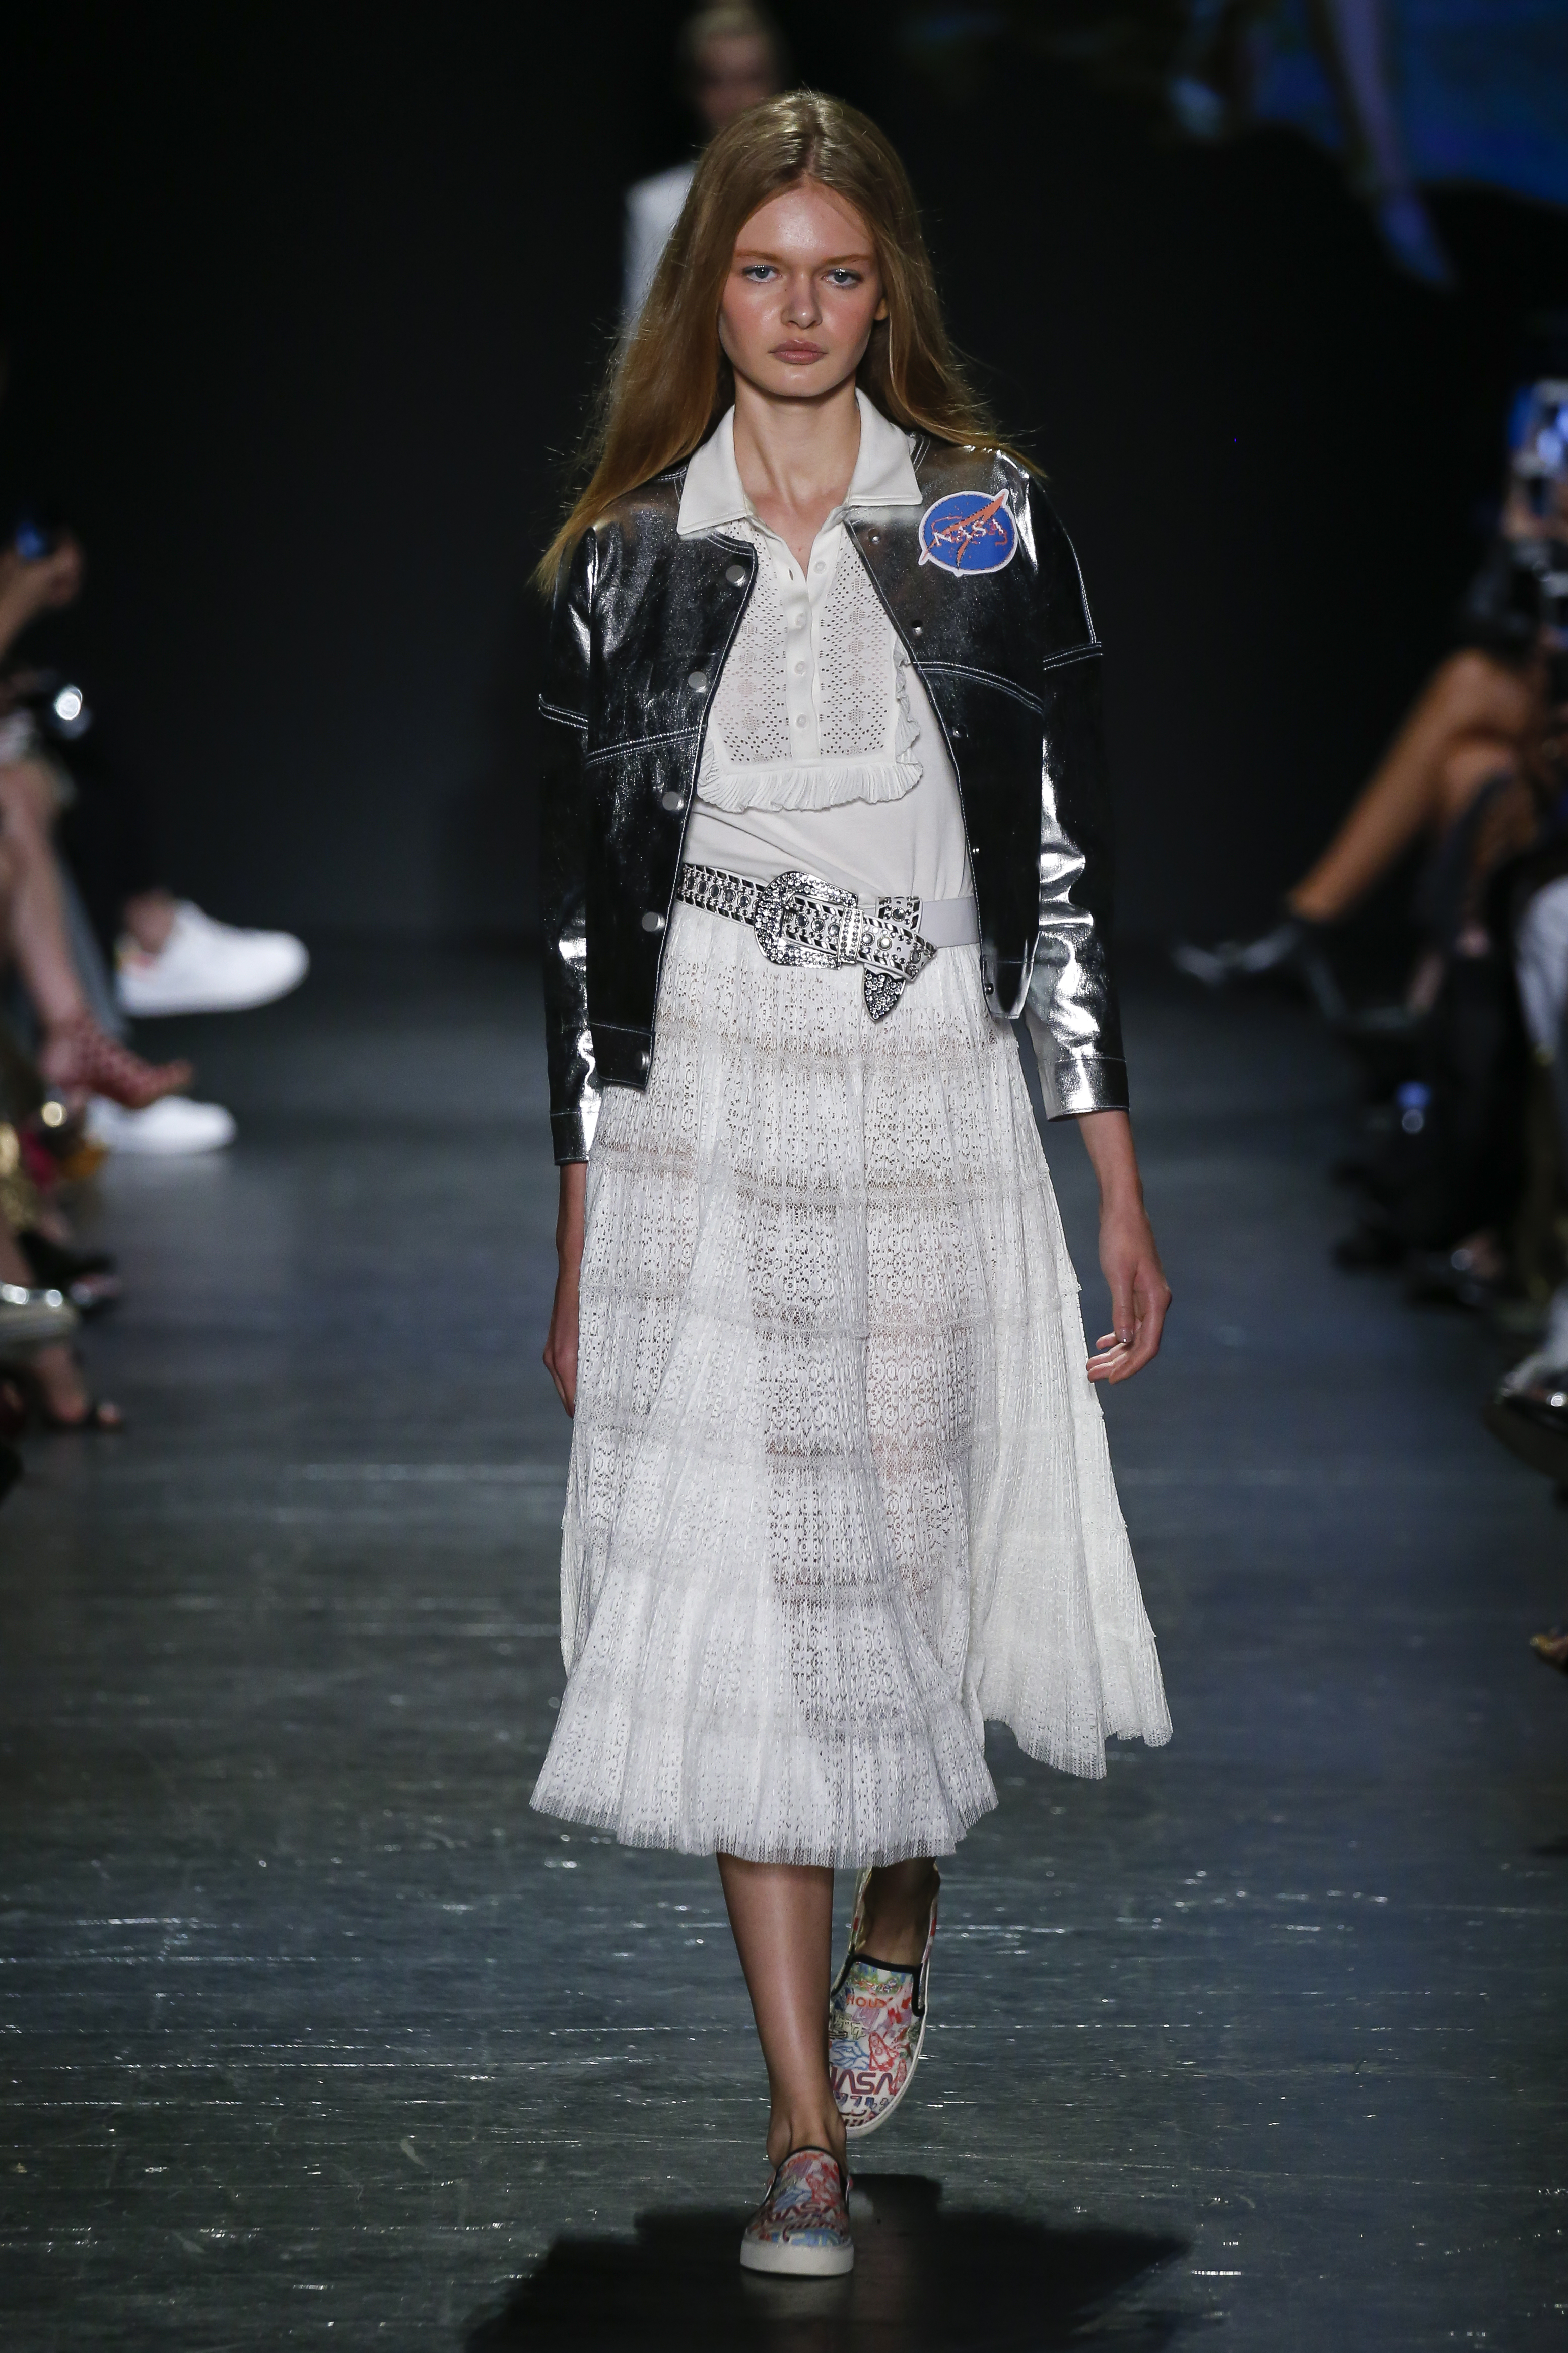 Vivienne Tam's Spring collection is the best NASA-inspired ... - photo #25